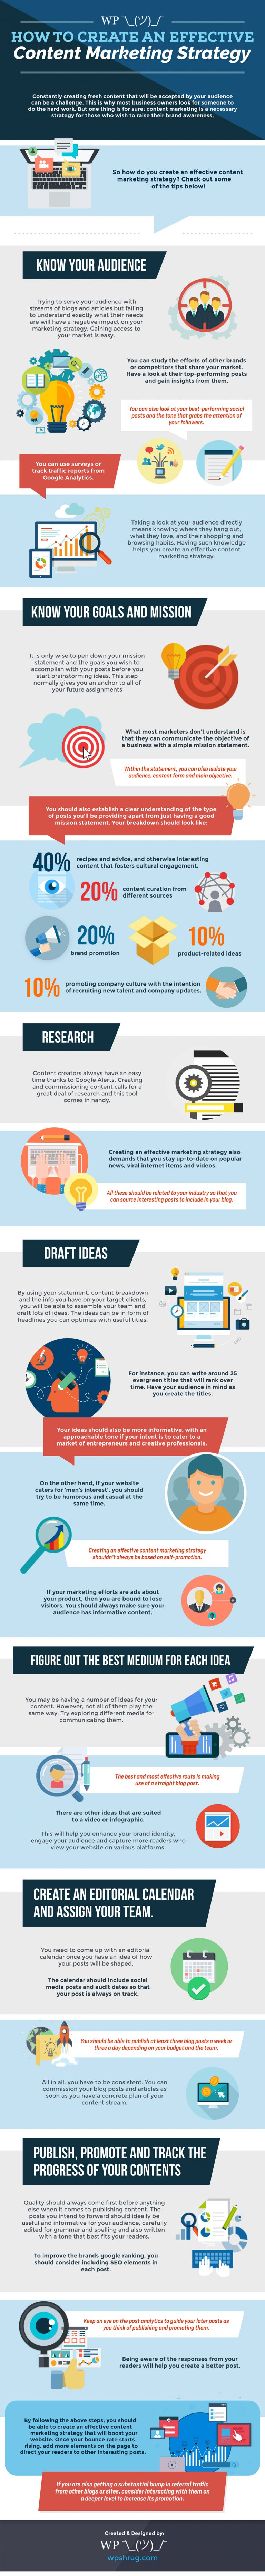 how-to-create-an-effective-content-marketing-strategy